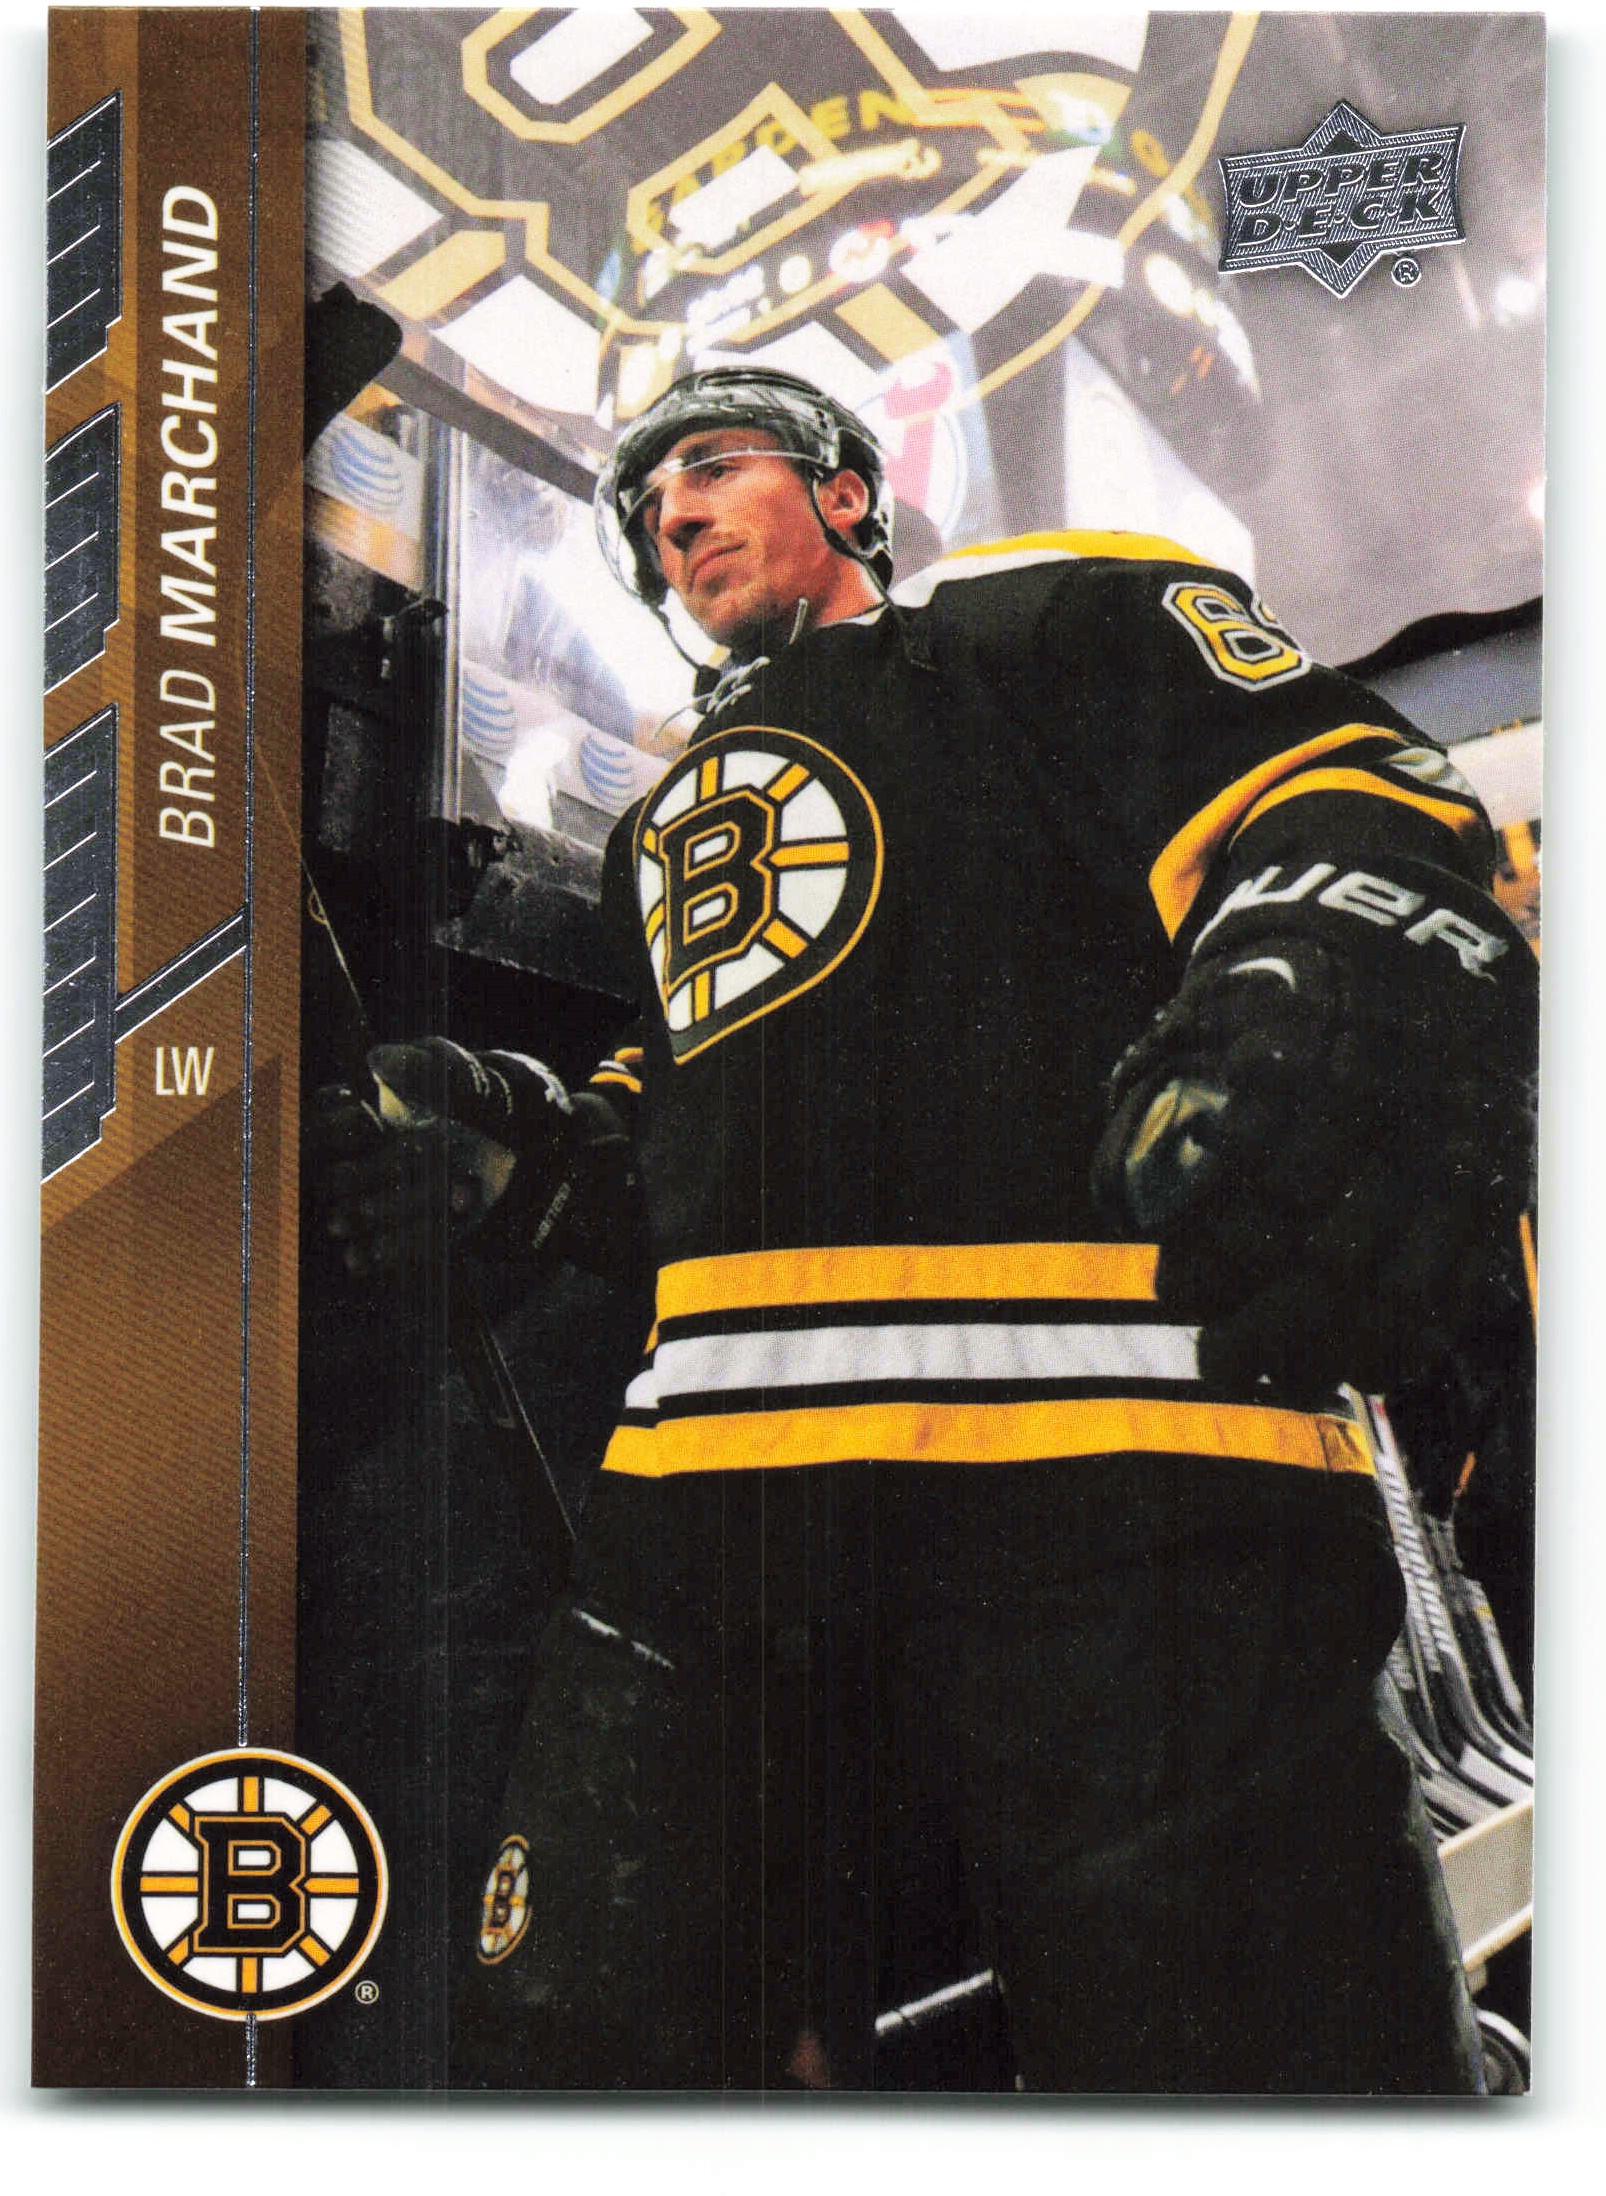 2015-16 Upper Deck #14 Brad Marchand NM-MT